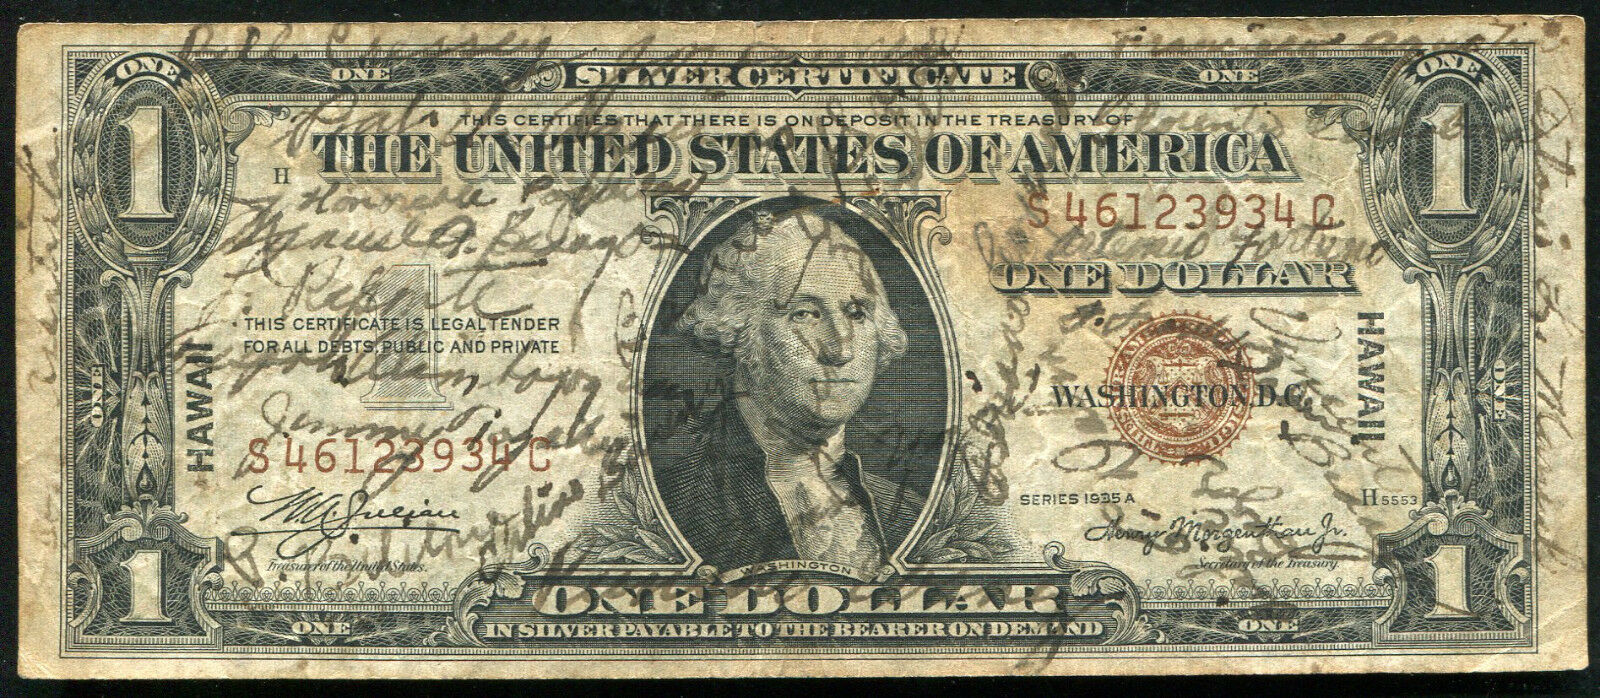 1935 a 1 hawaii silver certificate wwii short snorter 50 1935 a 1 hawaii silver certificate wwii short snorter 50 1 of 2 1betcityfo Images